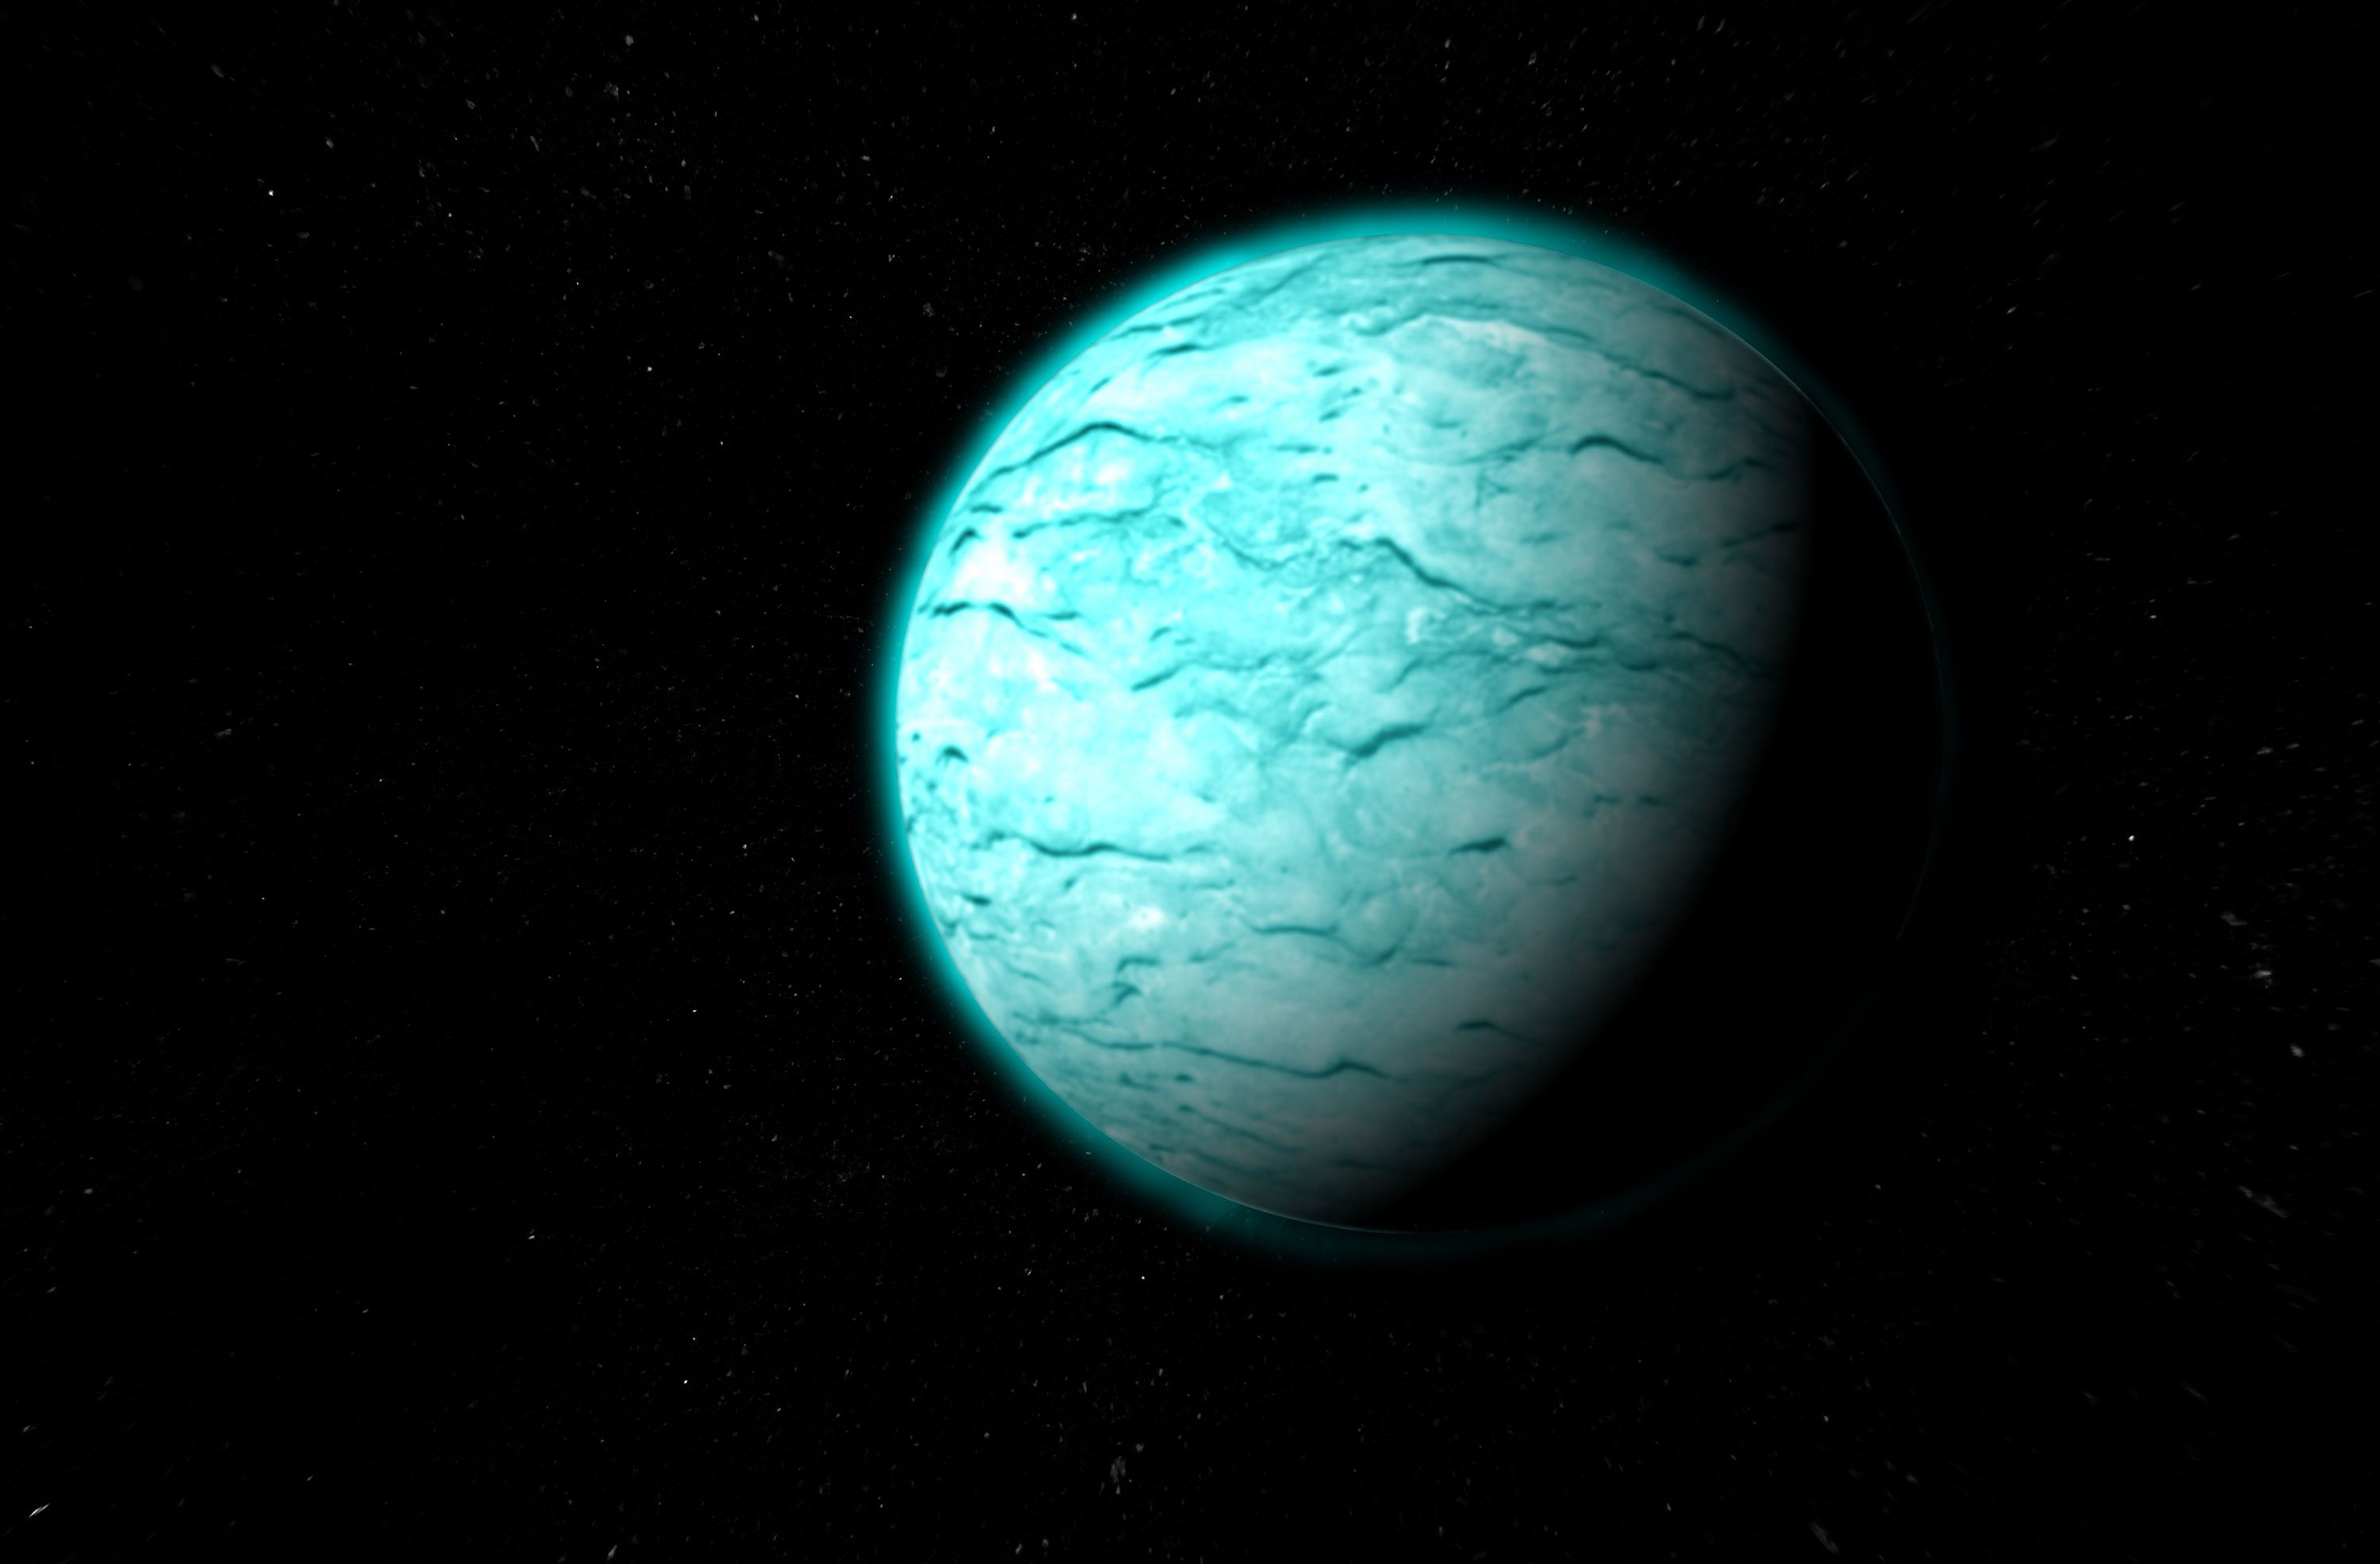 Uranus gets about 1400th of the sunlight that Earth does.